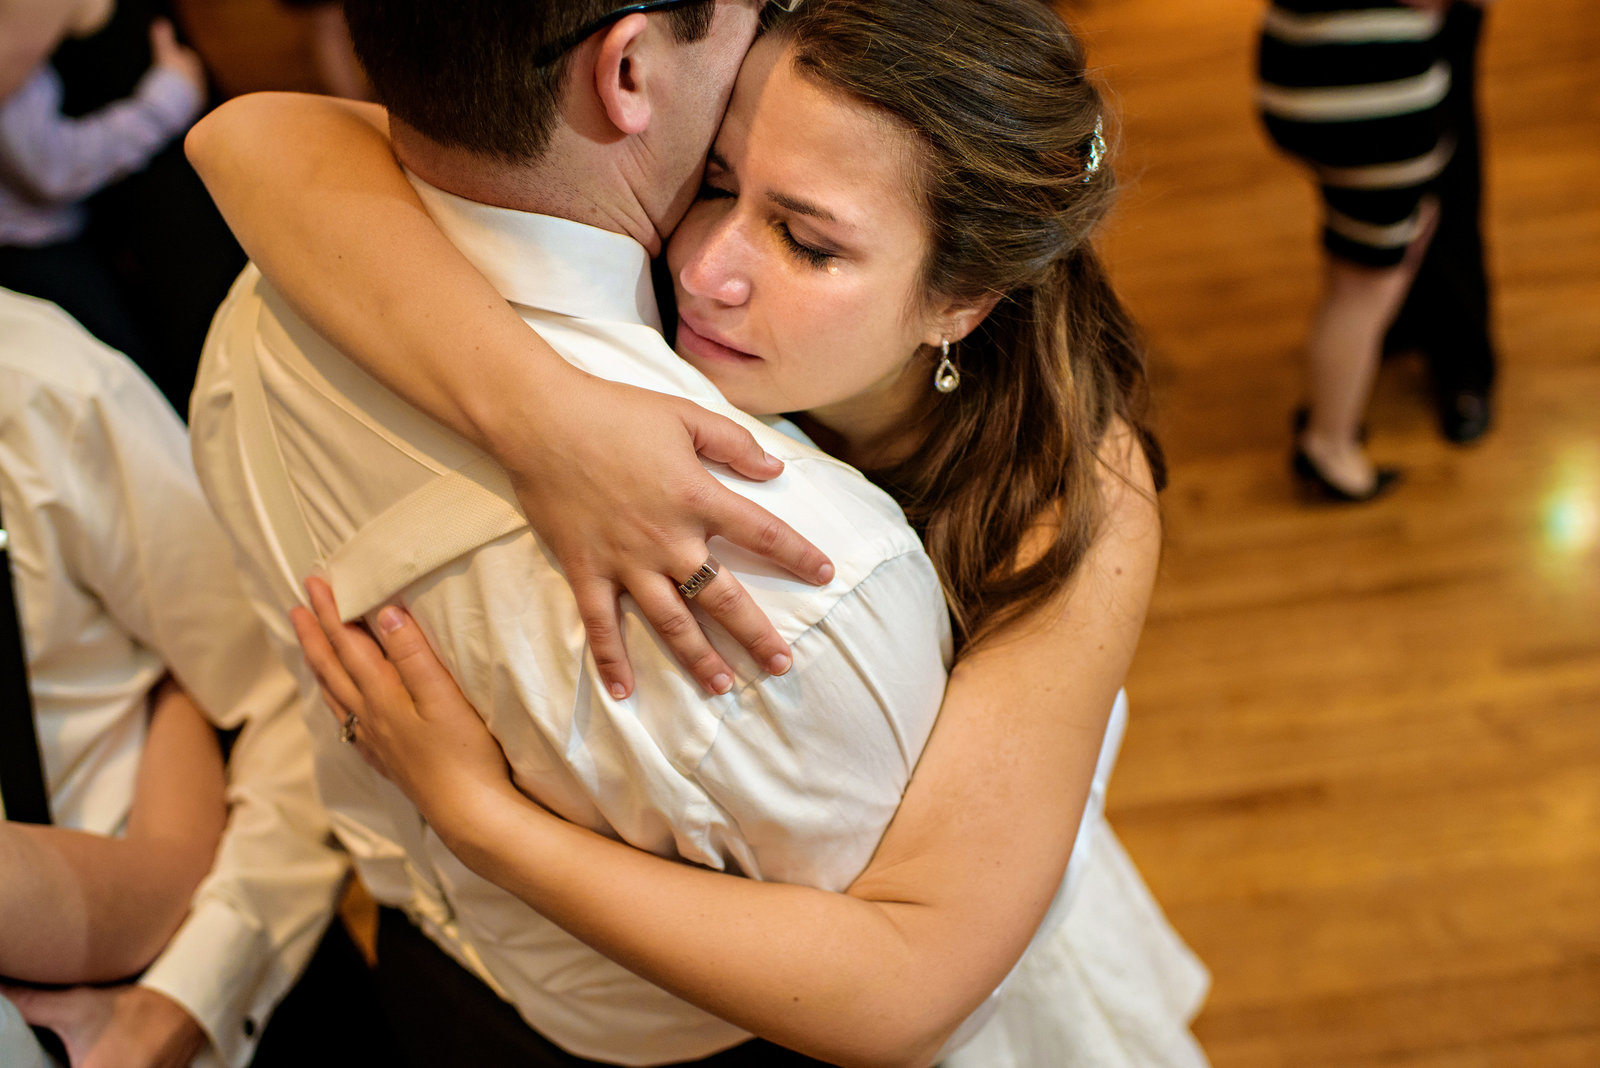 A bride sheds a tear during the last dance of the night with her groom.